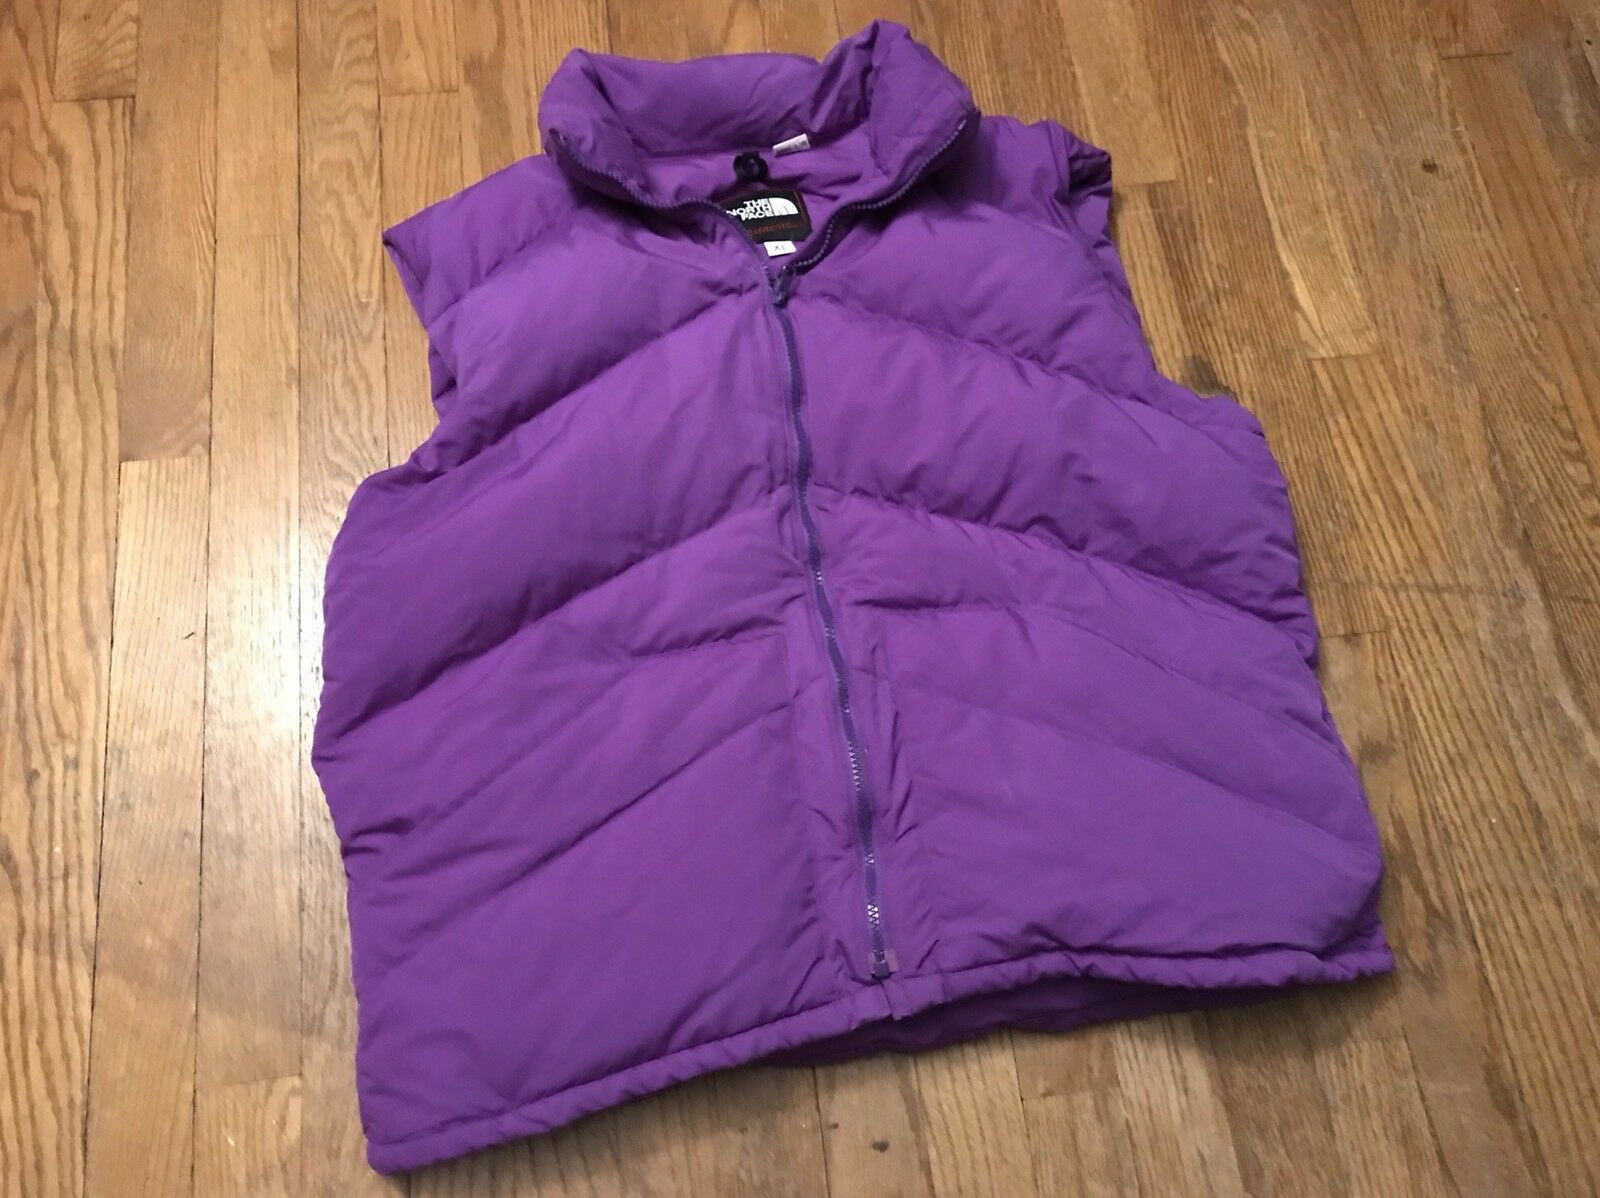 Vintage The North Face Extreme Winter Purple Puffer Vest